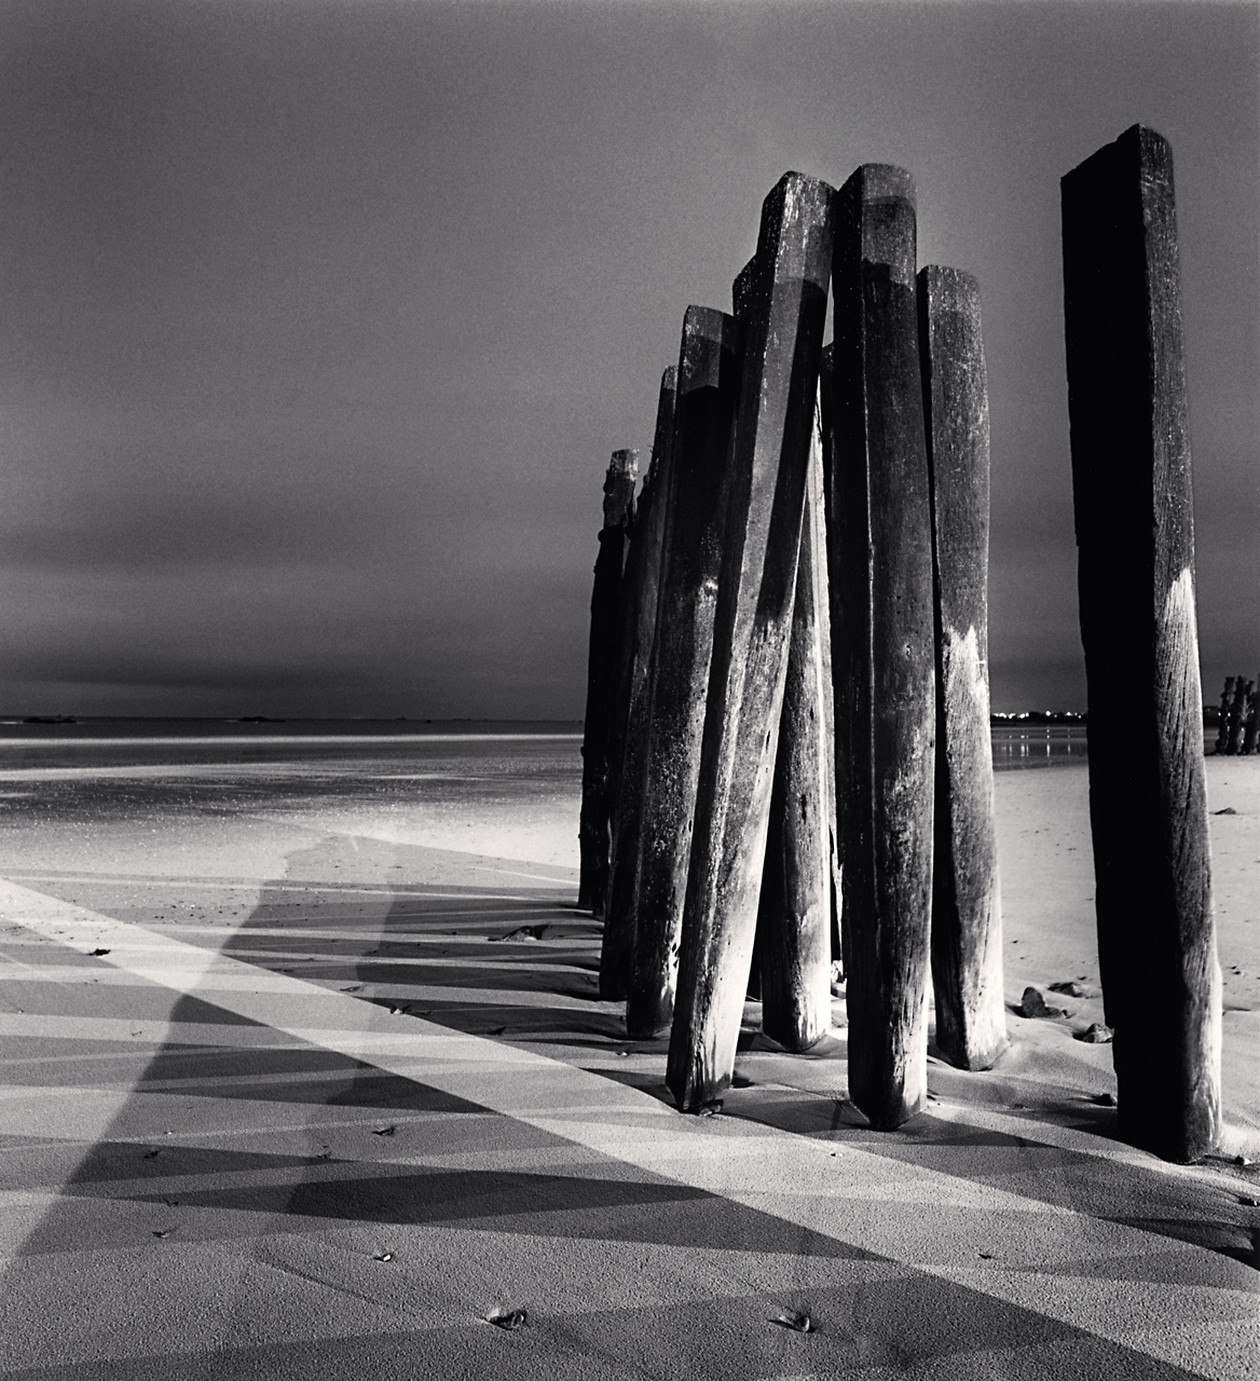 Night Shadows, St. Malo (2000) by Michael Kenna